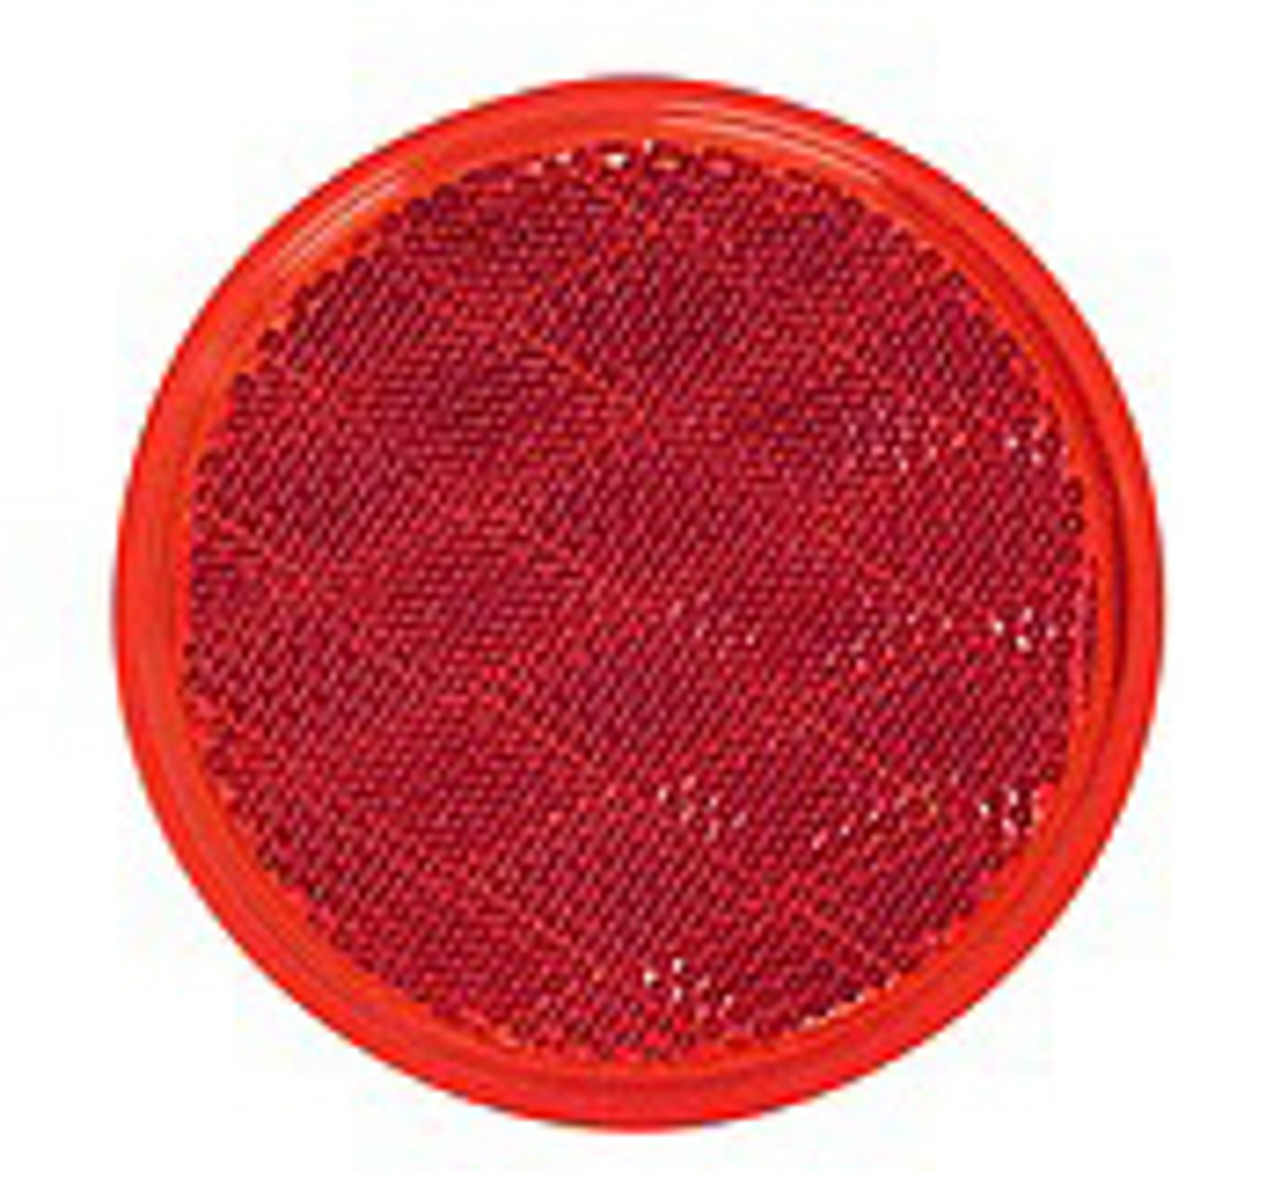 475R --- Round Red Reflector - Quick Mount